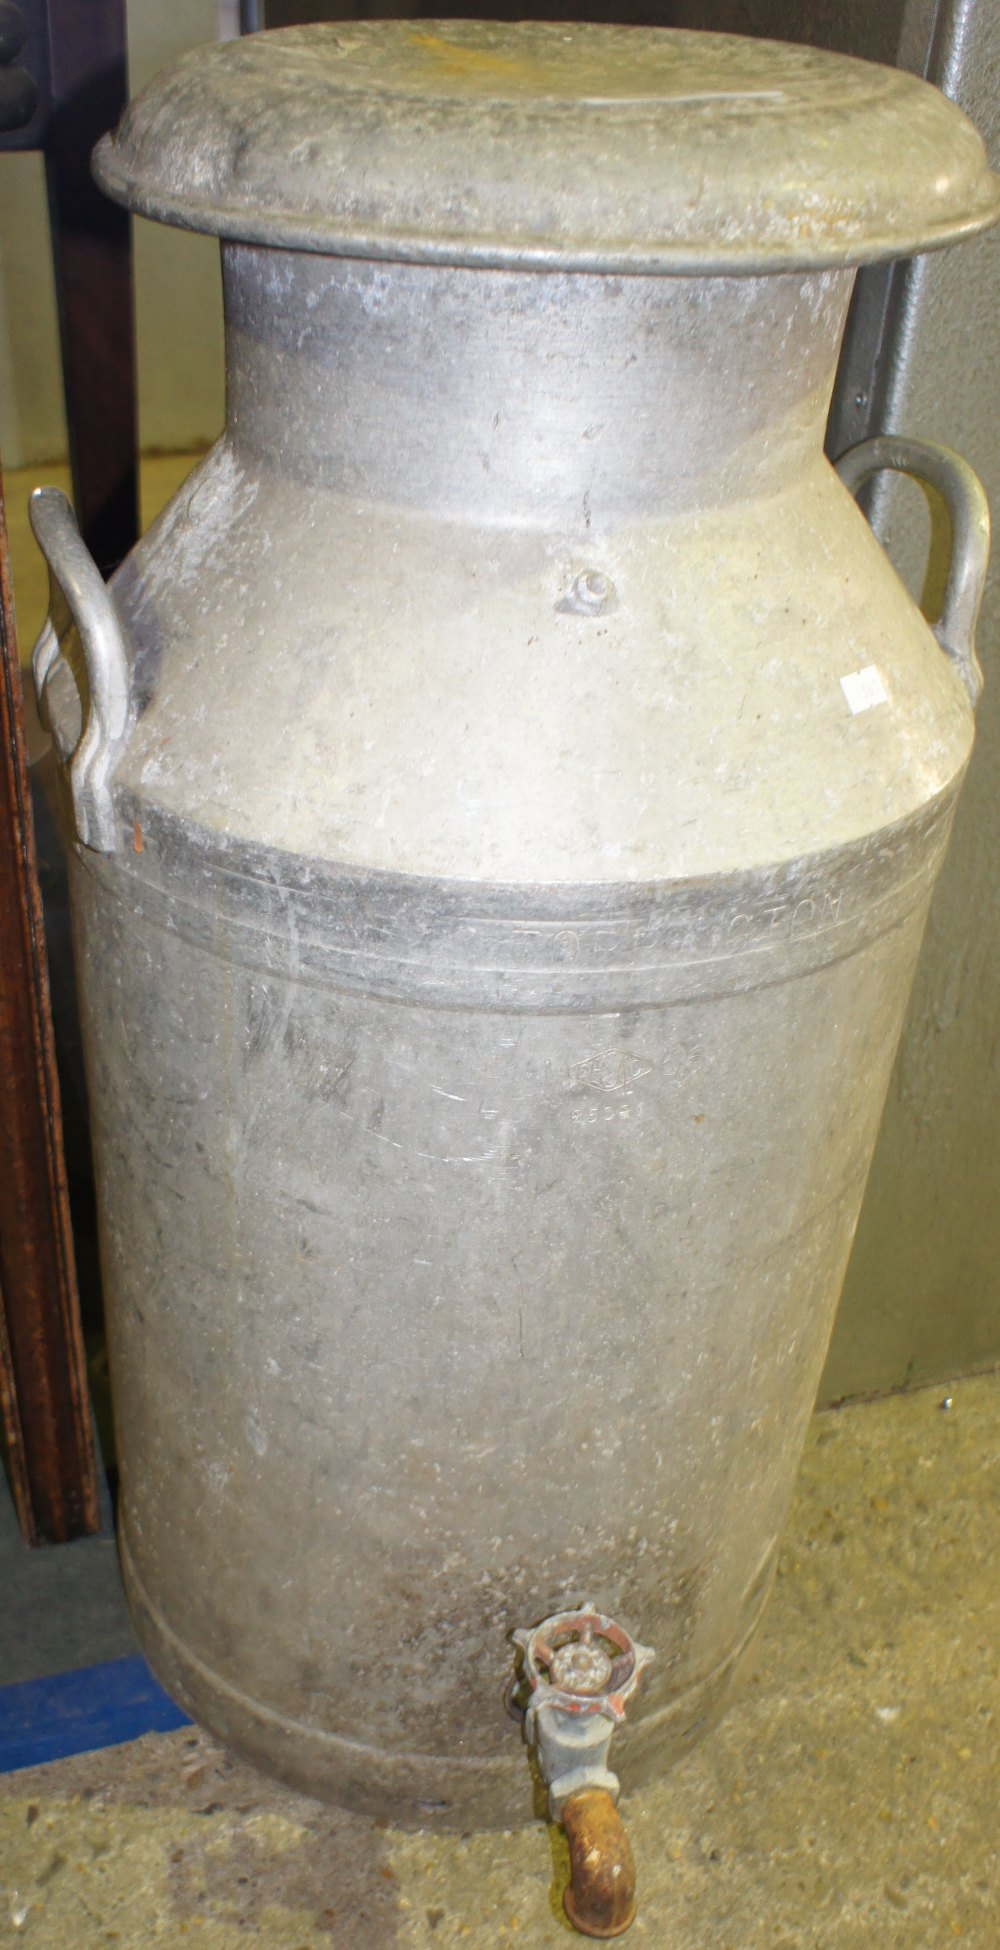 Lot 653 - NV- an old Panamanian milk churn with an added tap